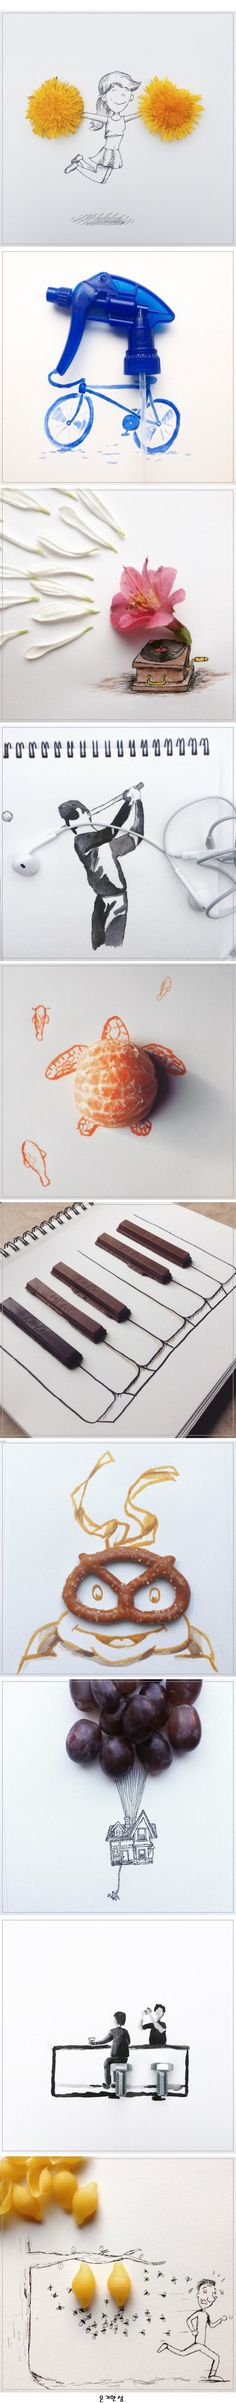 Funny Illustrations Created Around Everyday Objects by 17-year-old Artist Kristian Mensa